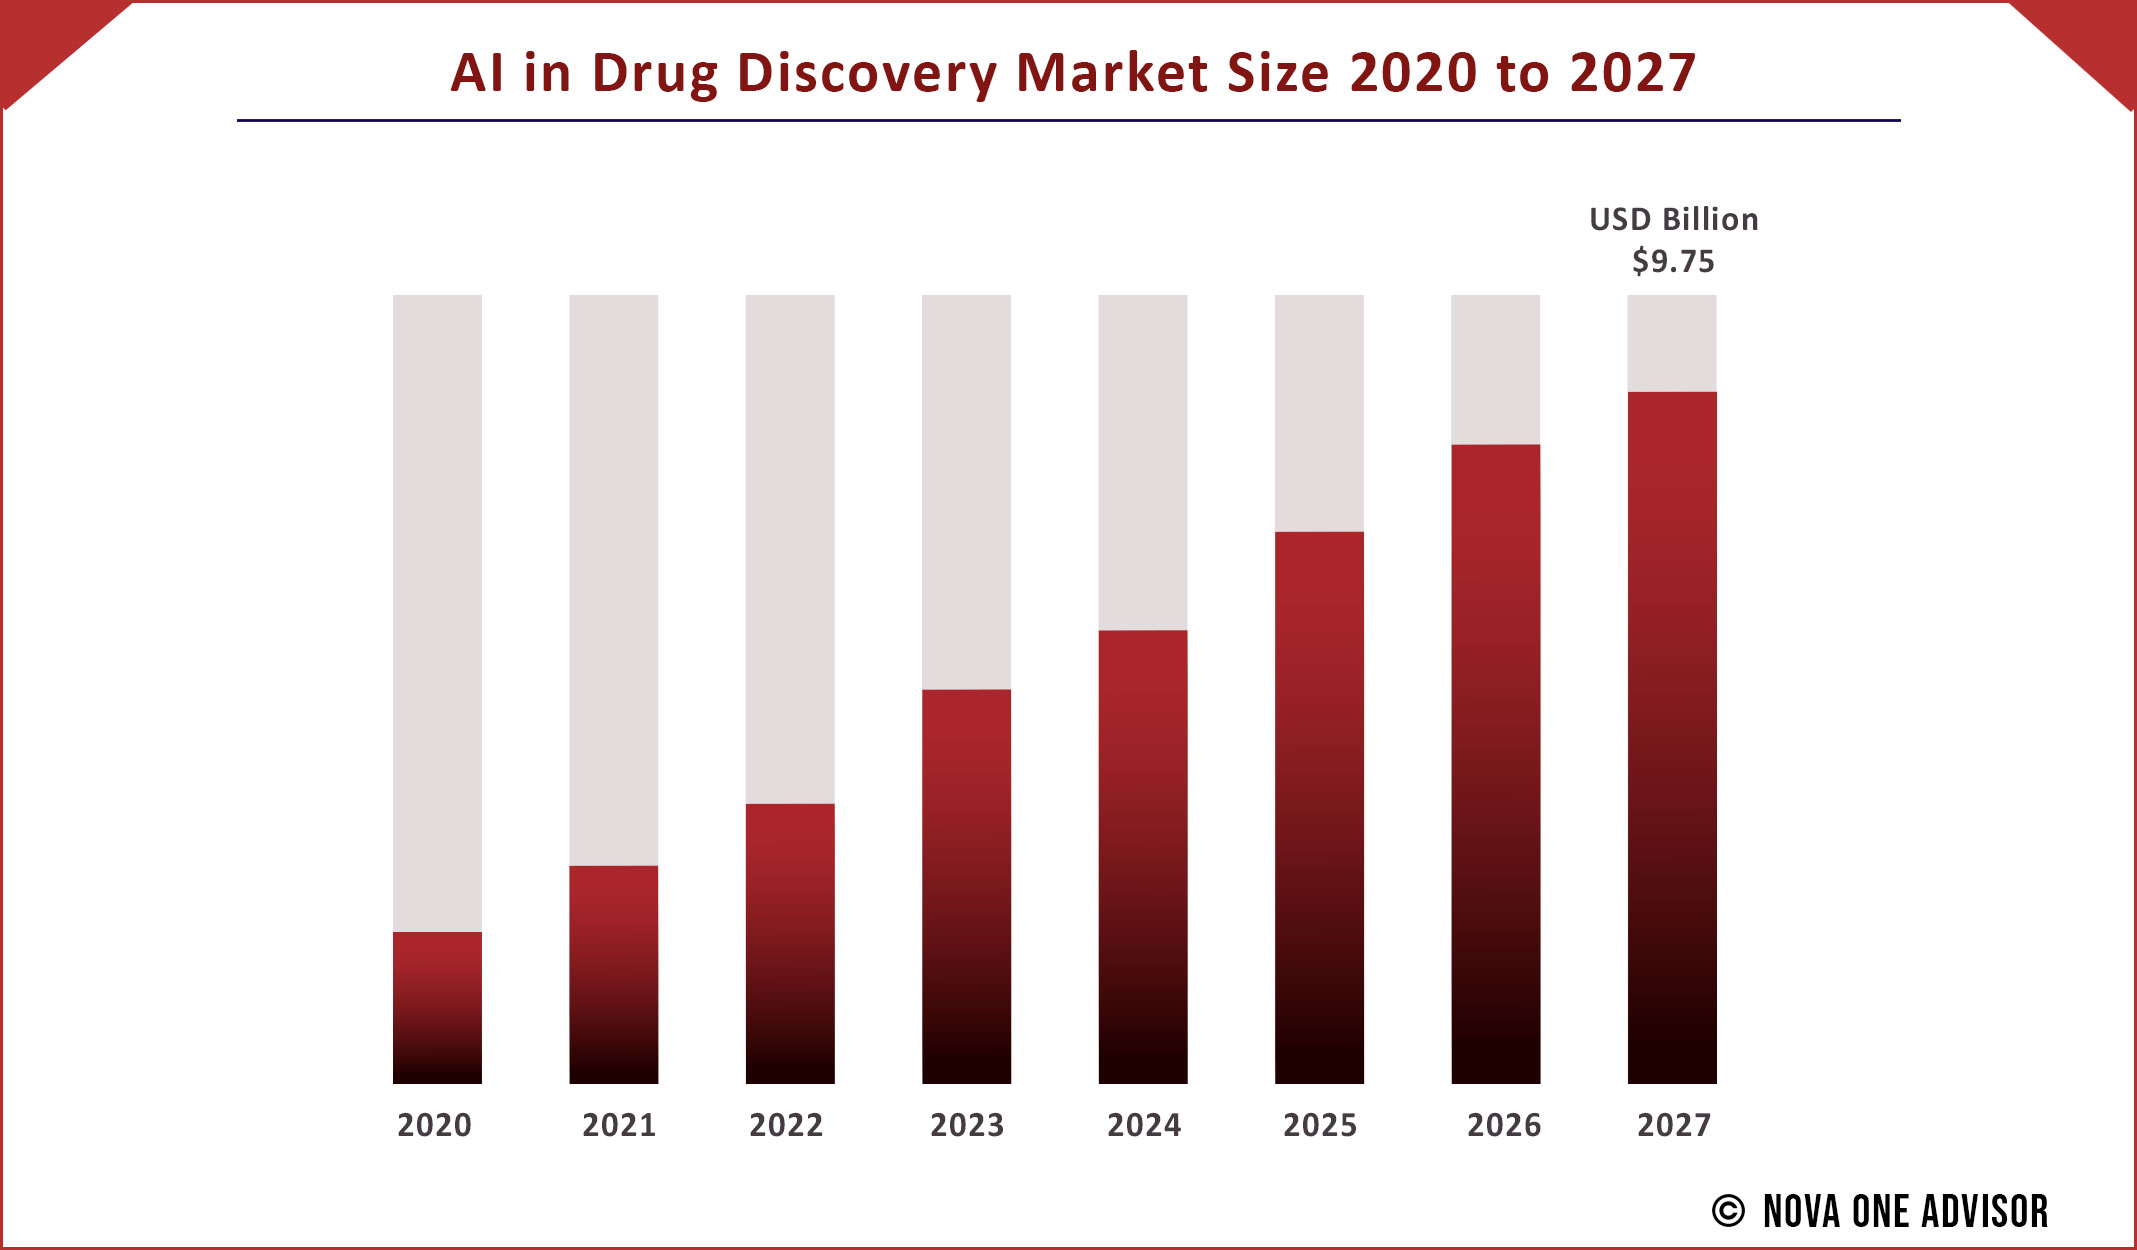 AI in Drug Discovery Market Size 2020 to 2027